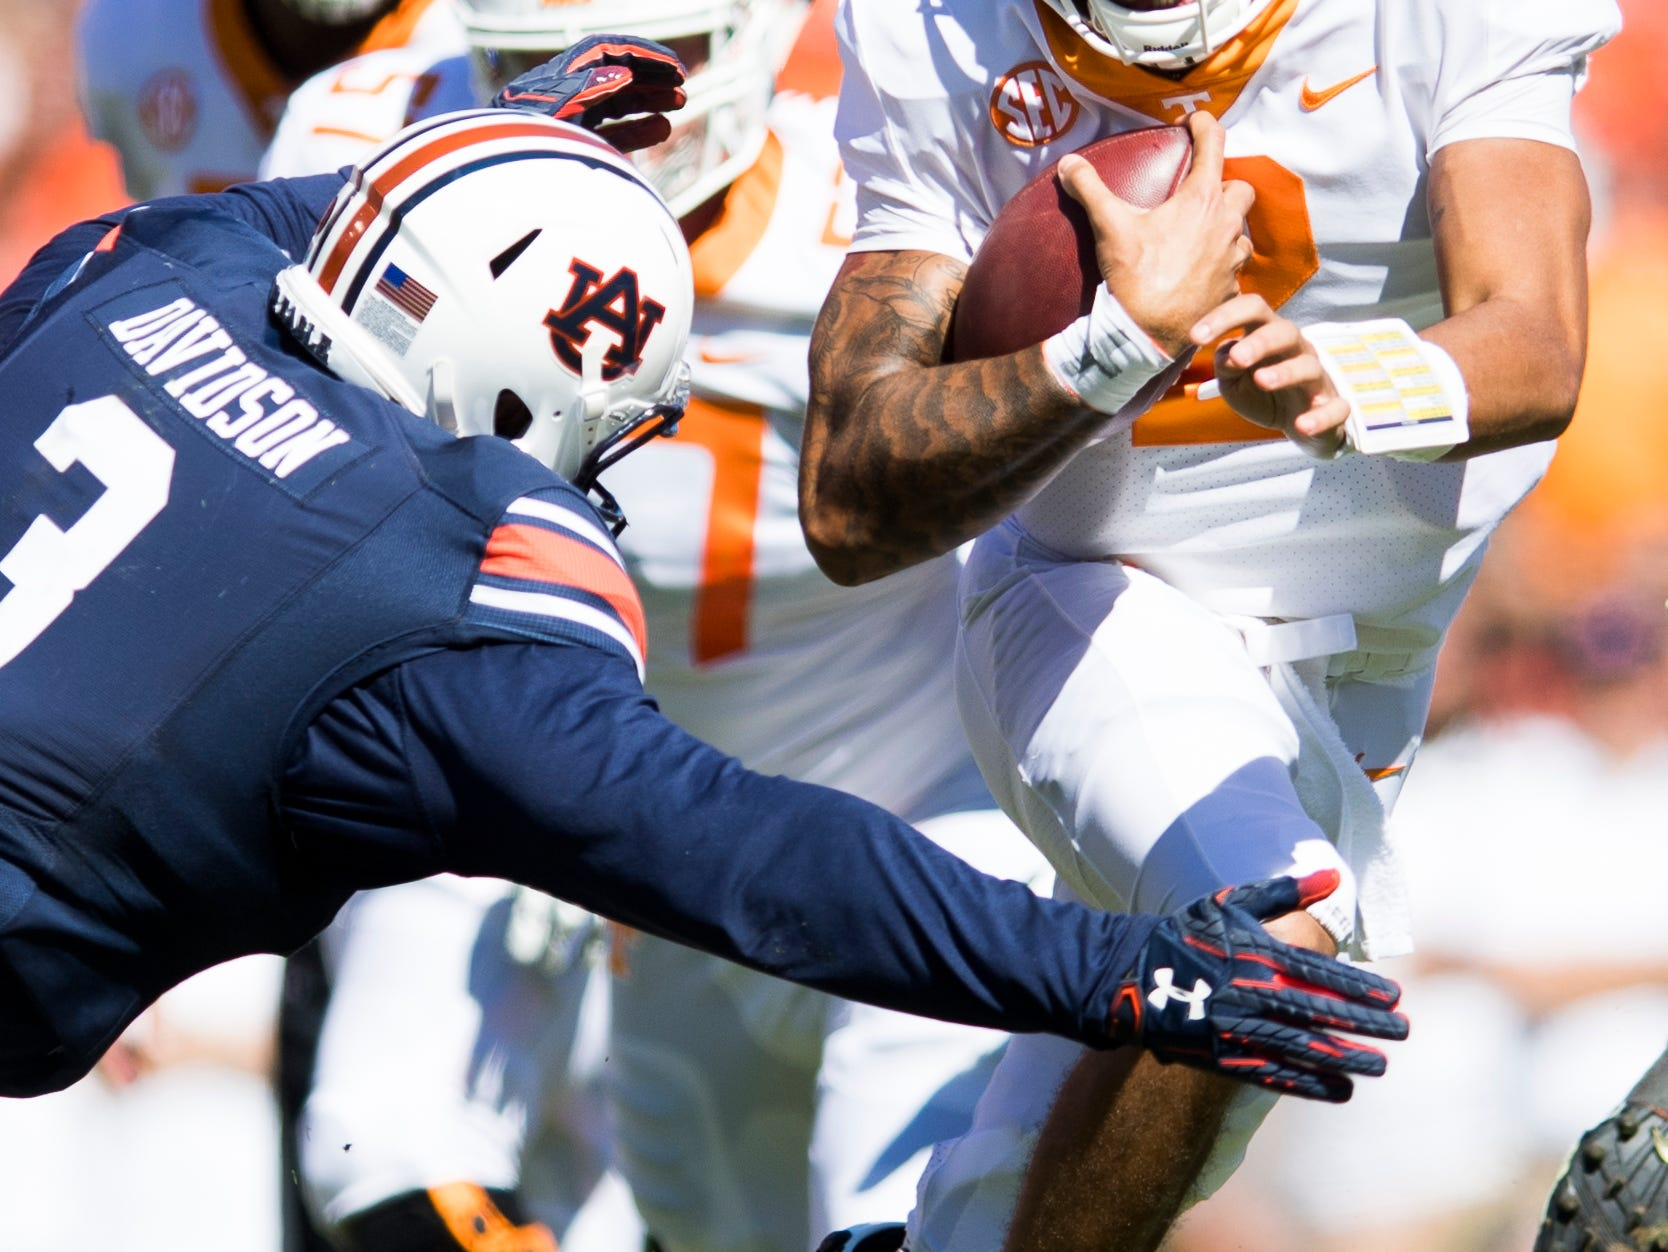 Tennessee quarterback Jarrett Guarantano (2) runs with the ball as Auburn defensive lineman Marlon Davidson (3) defends during a game between Tennessee and Auburn at Jordan-Hare Stadium in Auburn, Alabama on Saturday, October 13, 2018.